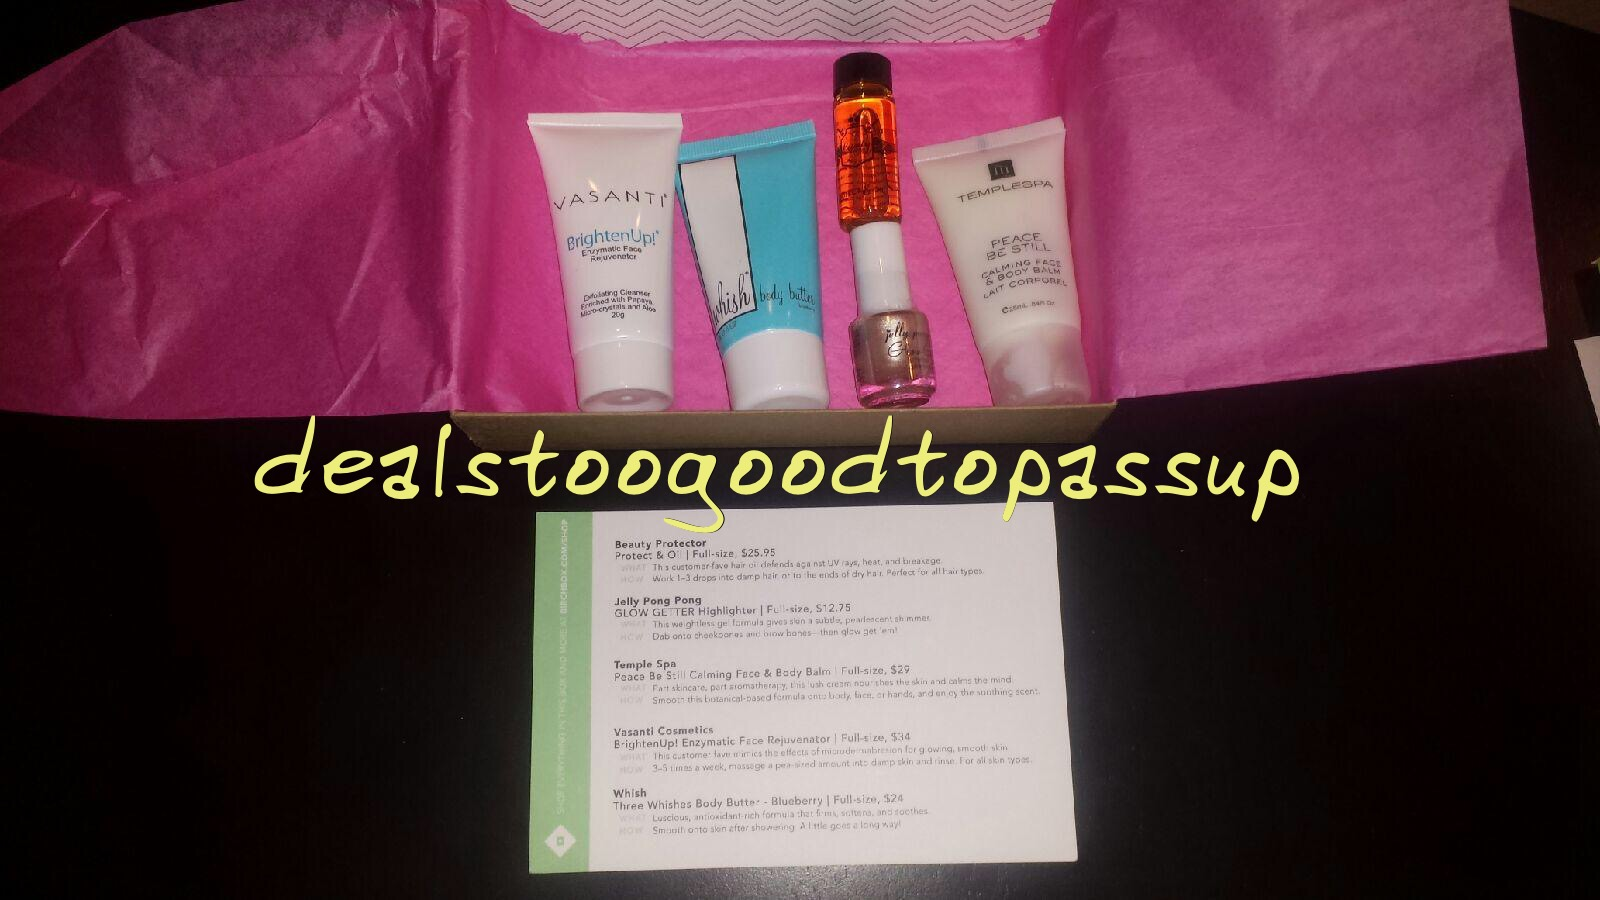 Her First Box Arrived A Bit Before Birthday The Item That Jumped Out At Me Was Beauty Protector Protect Oil This Is Popular Birchbox